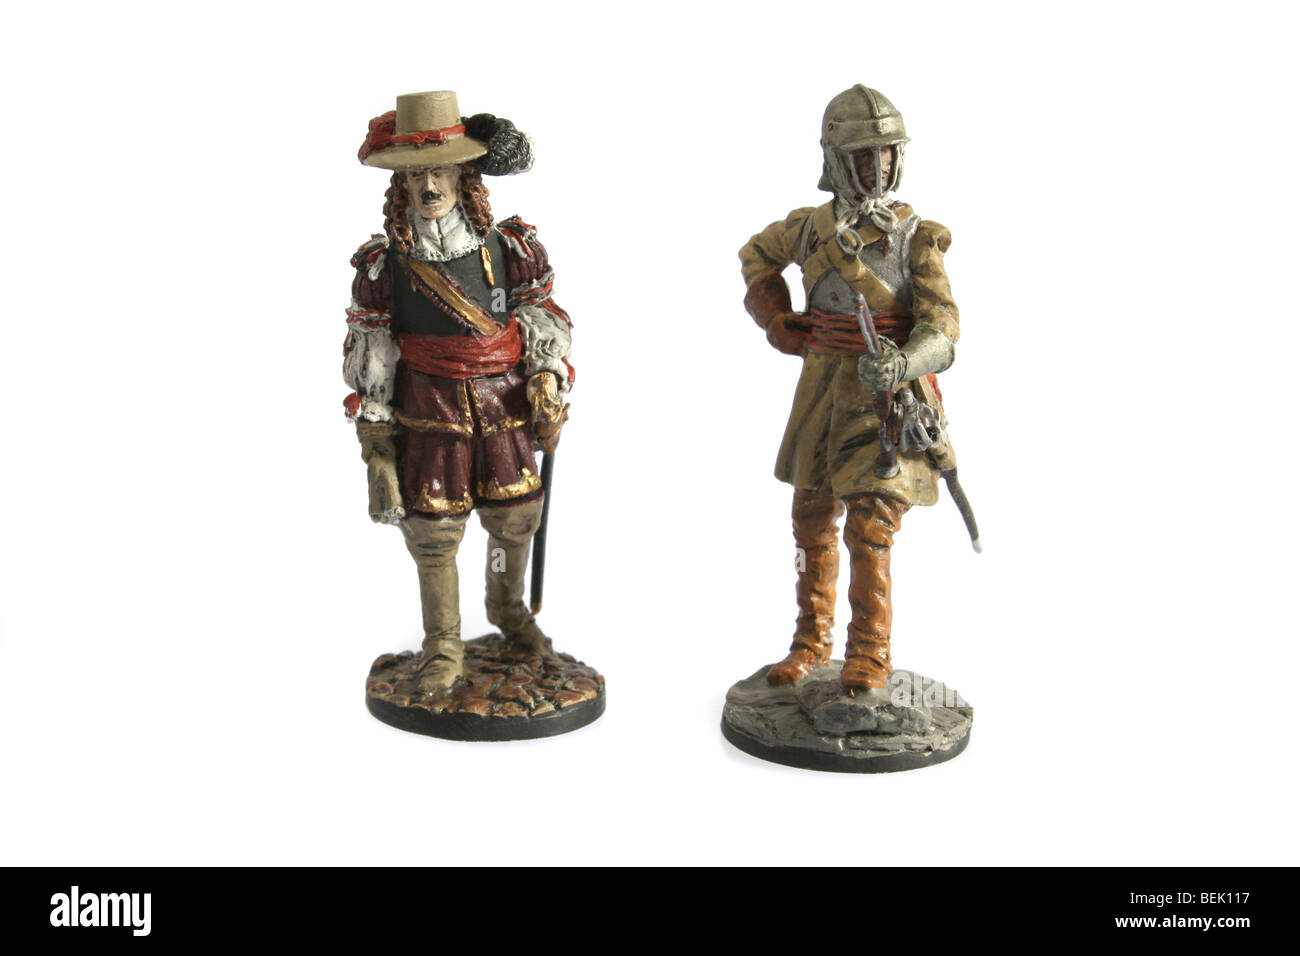 A 1640's Cavalry Trooper from the New Model Army and a Royalist Cavalier. A collectible Franklin Mint soldier. - Stock Image